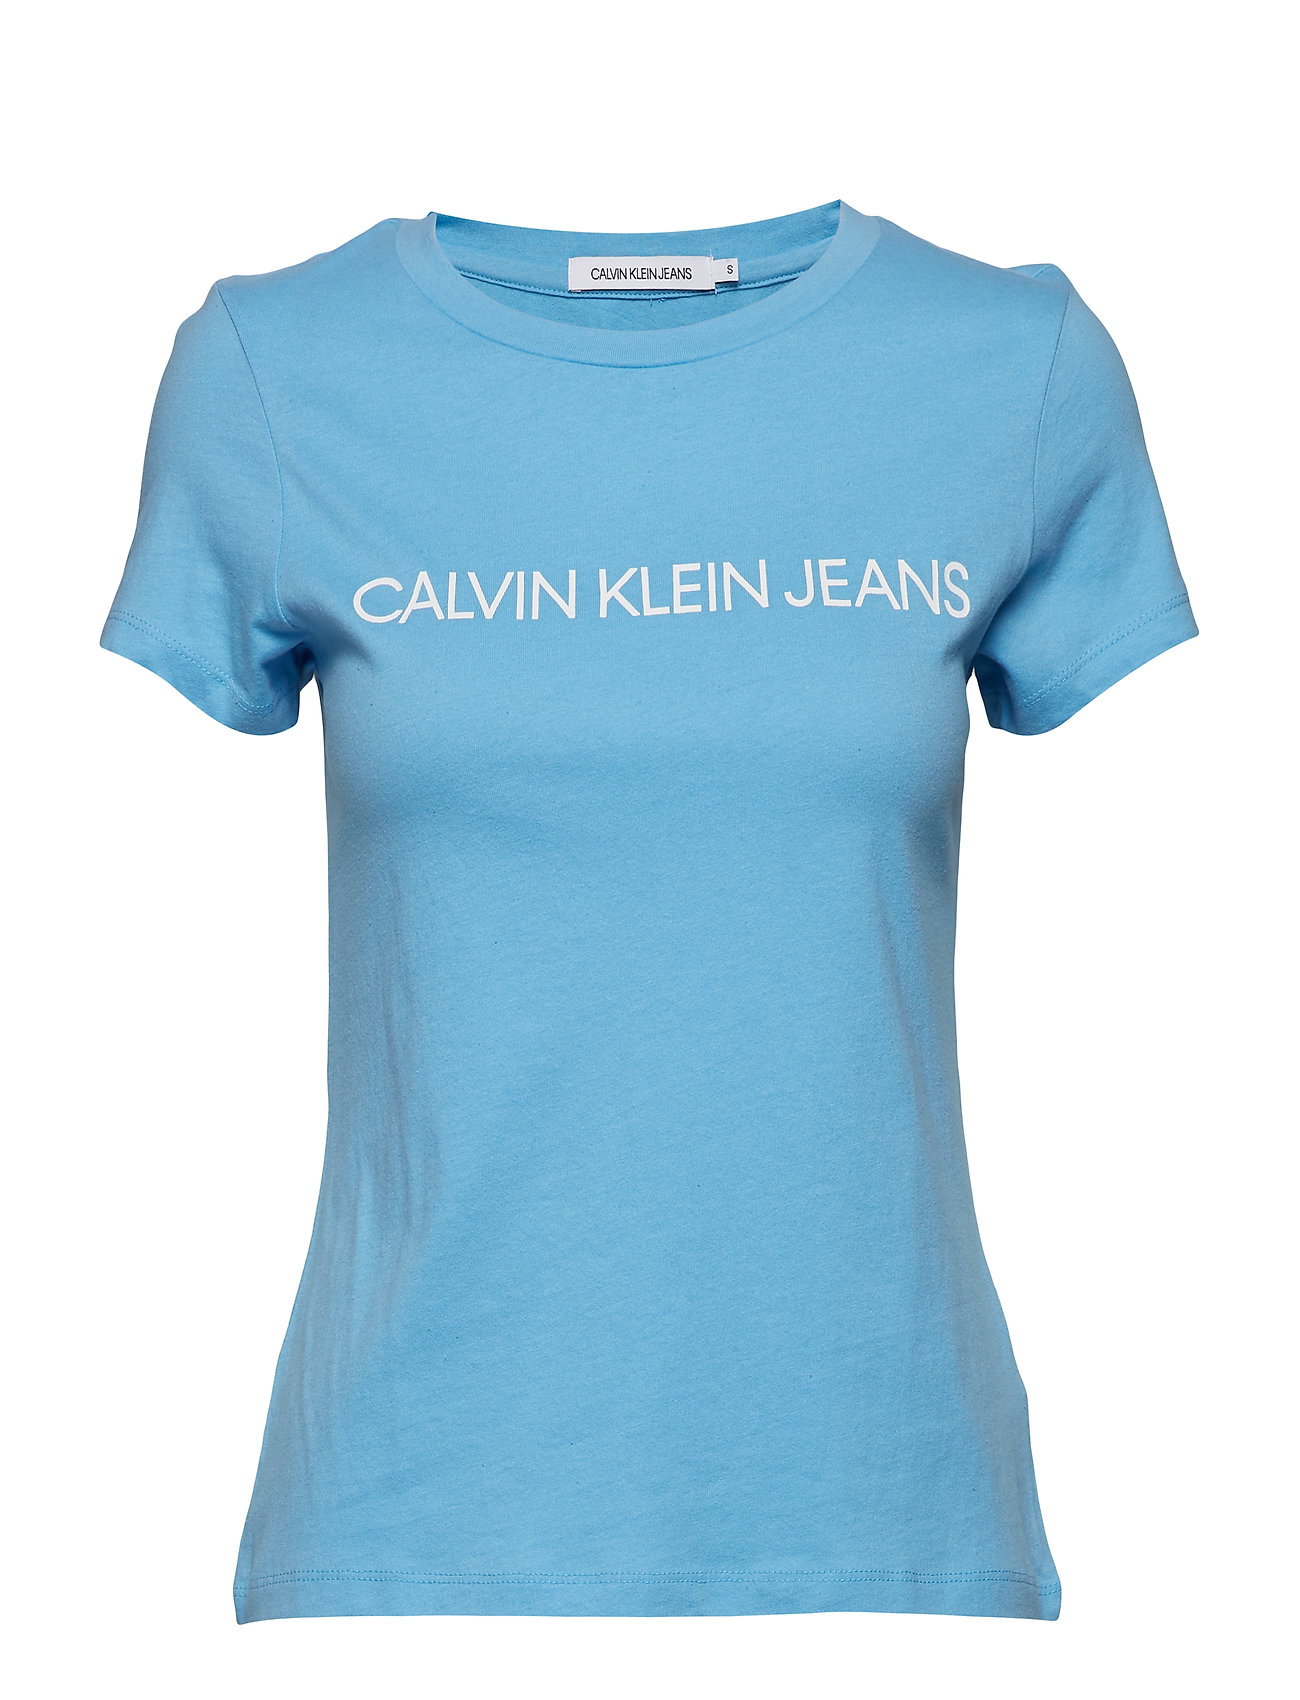 Calvin Klein Jeans INSTITUTIONAL LOGO SLIM FIT TEE